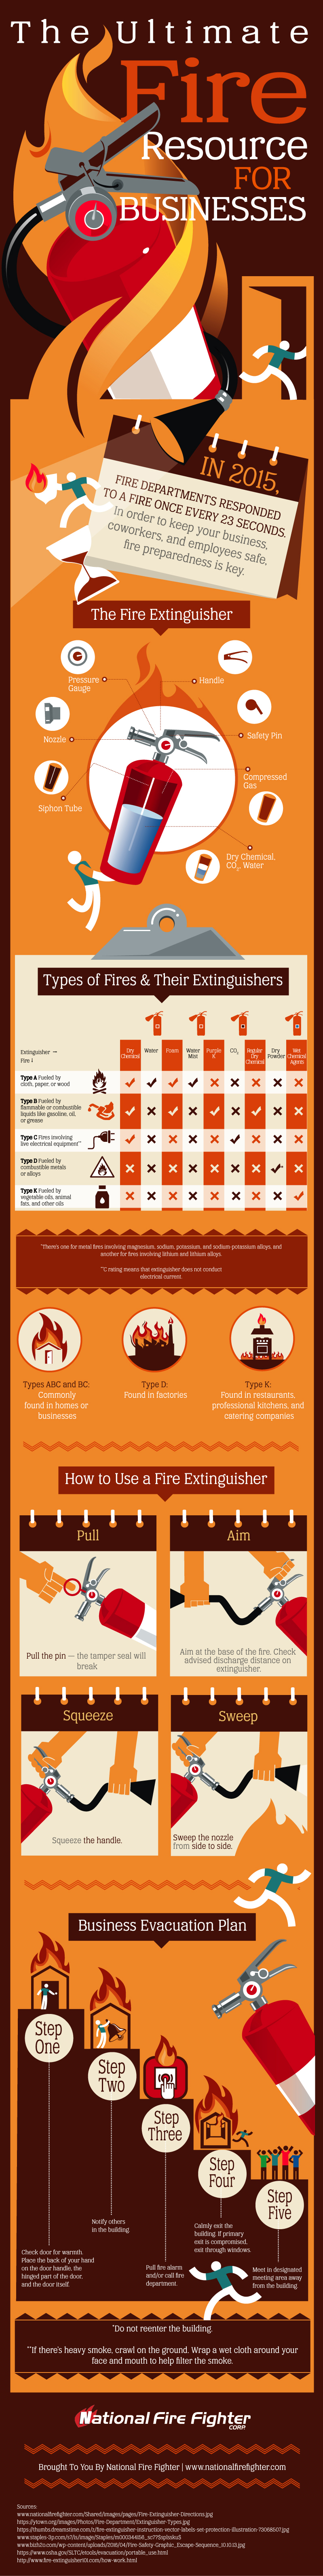 The Ultimate Fire Resource For Businesses [INFOGRAPHIC]